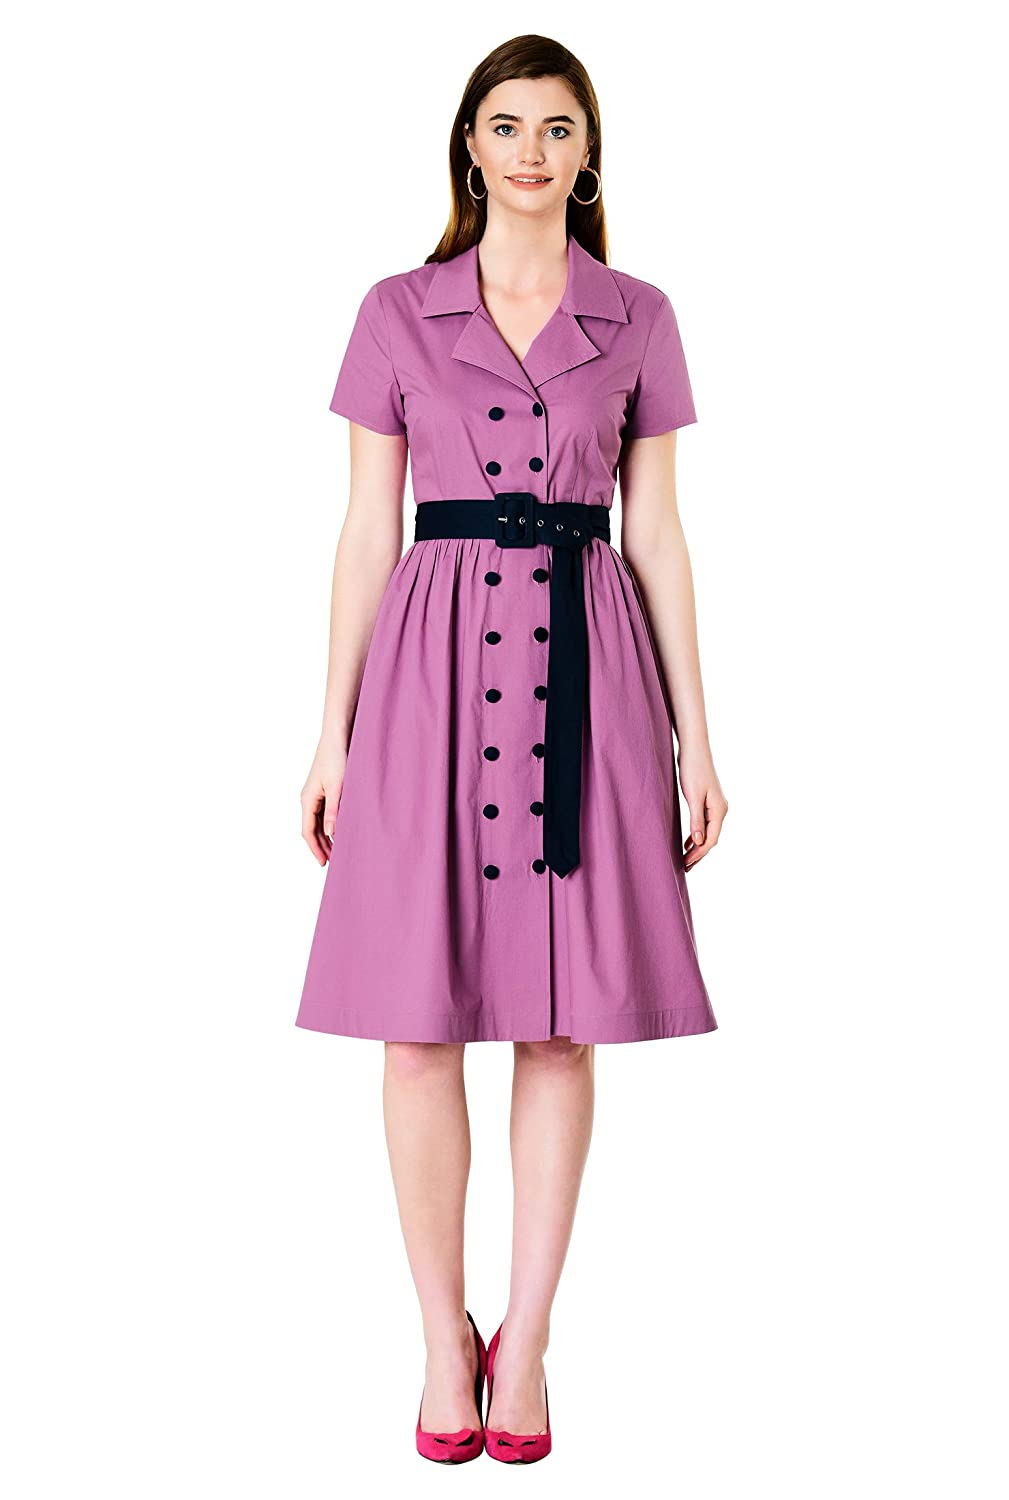 Fifties Dresses : 1950s Style Swing to Wiggle Dresses eShakti Womens Contrast Button poplin Belted Shirtdress $69.95 AT vintagedancer.com